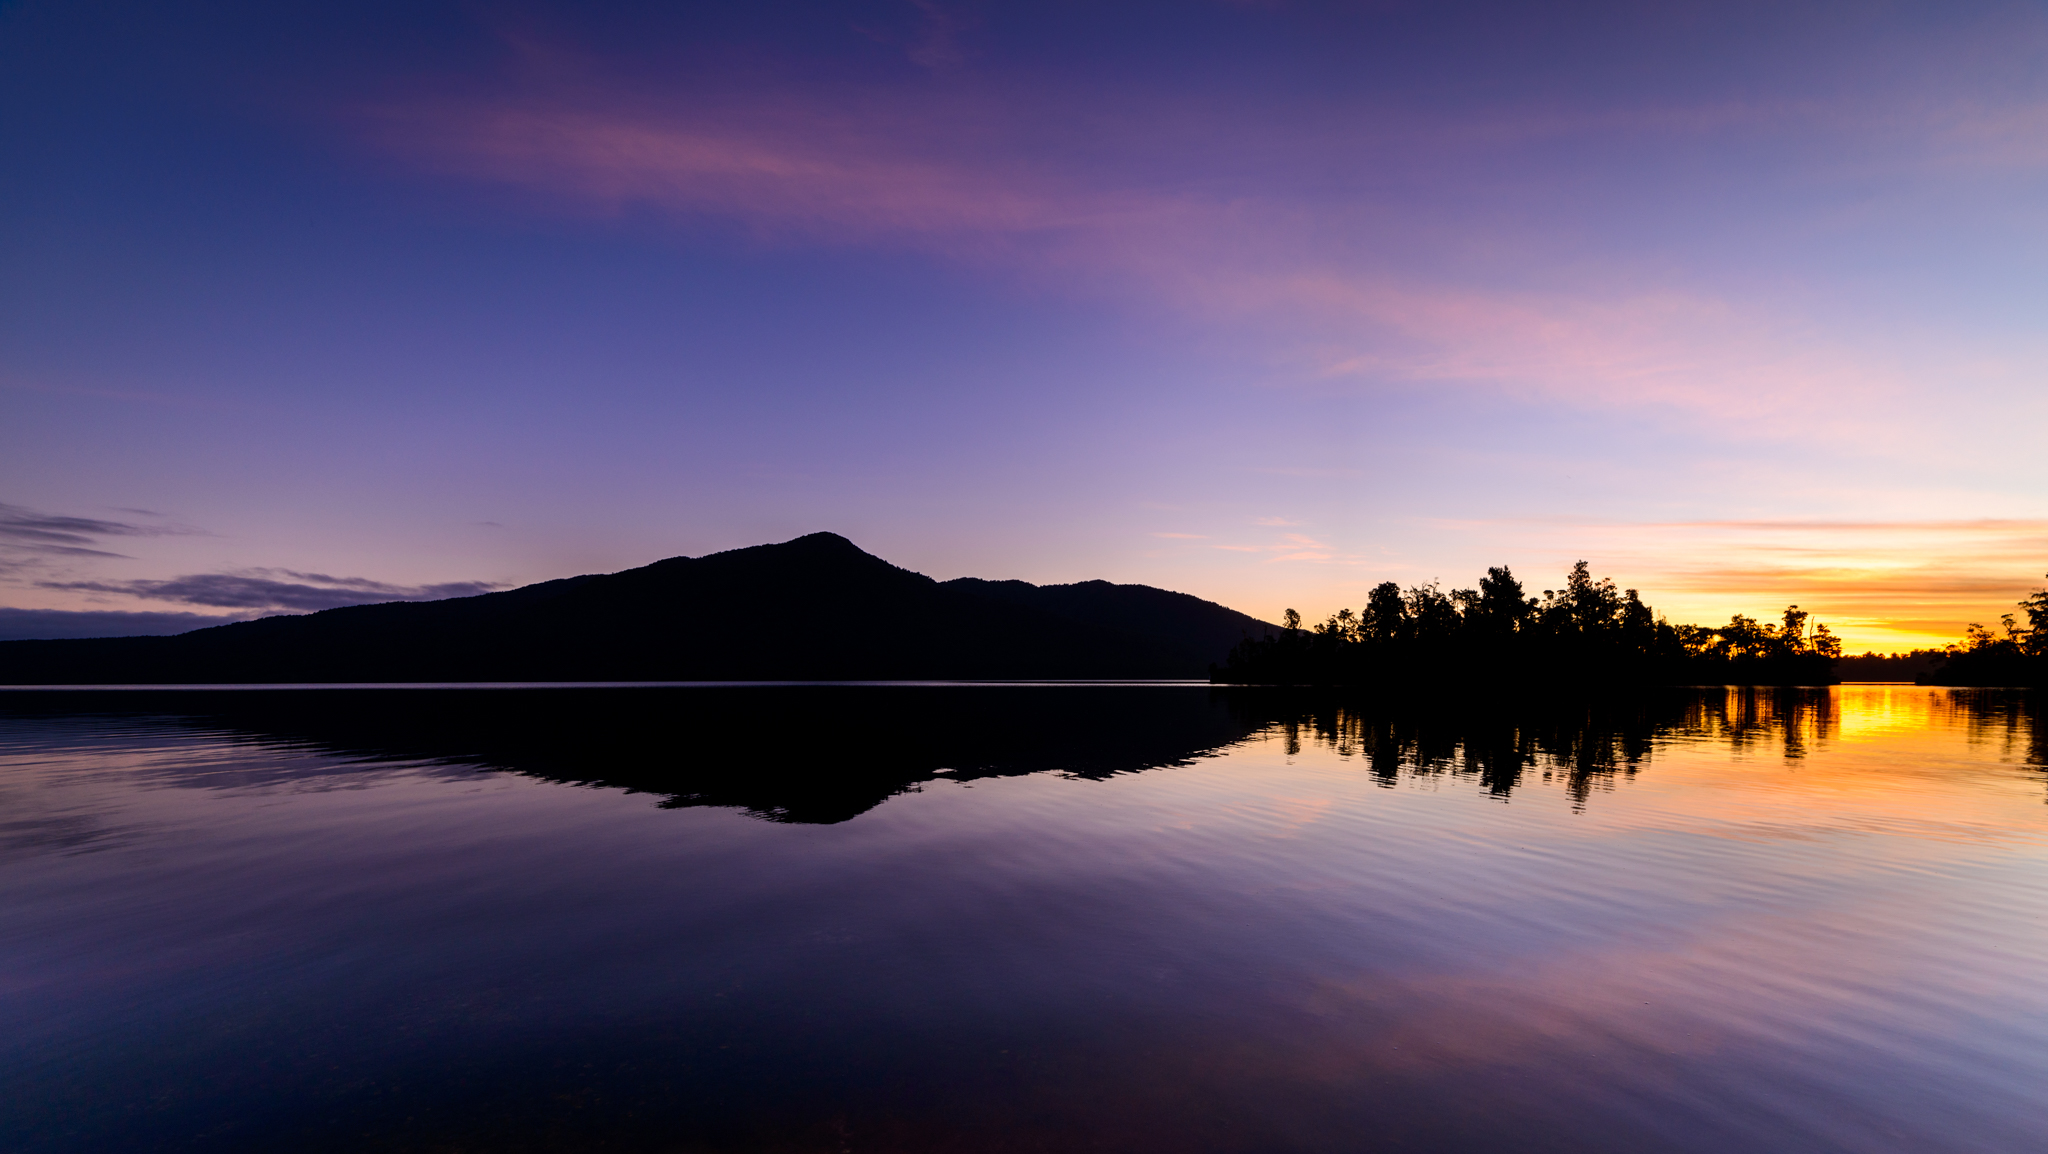 """Turning Purple into Gold""  Lake Kaniere, West Coast, New Zealand  D800, ISO100, f8, 14mm, 1/40sec"